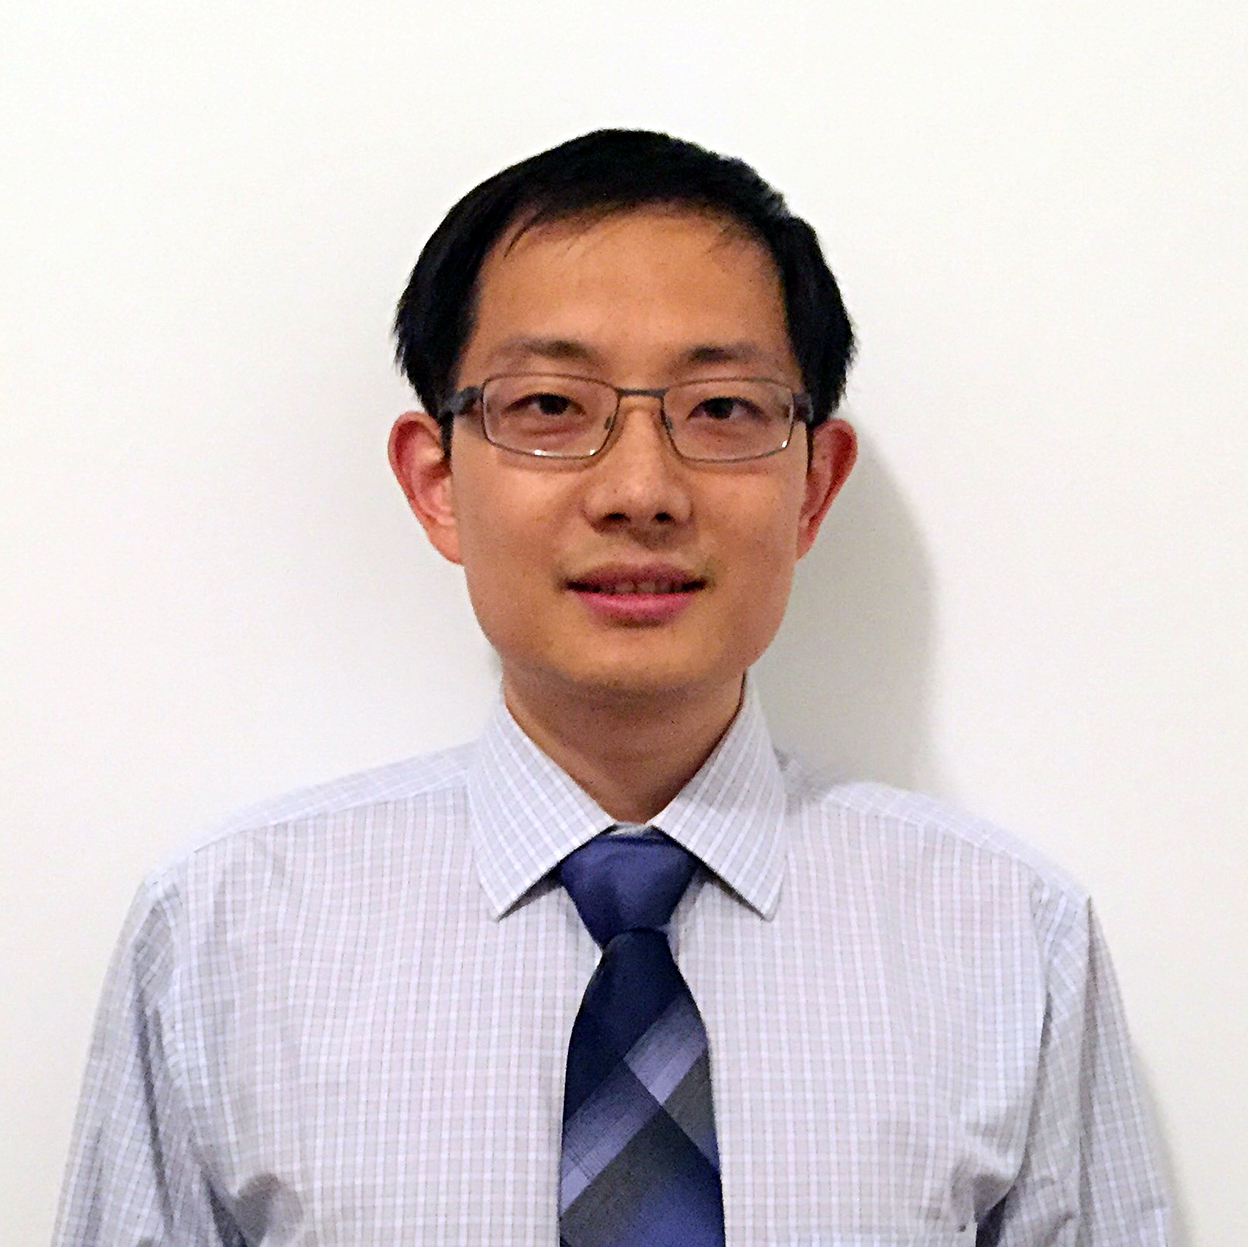 Liang Wu, Vice President of Financial Engineering and Head of CrossAsset Product Management at Numerix